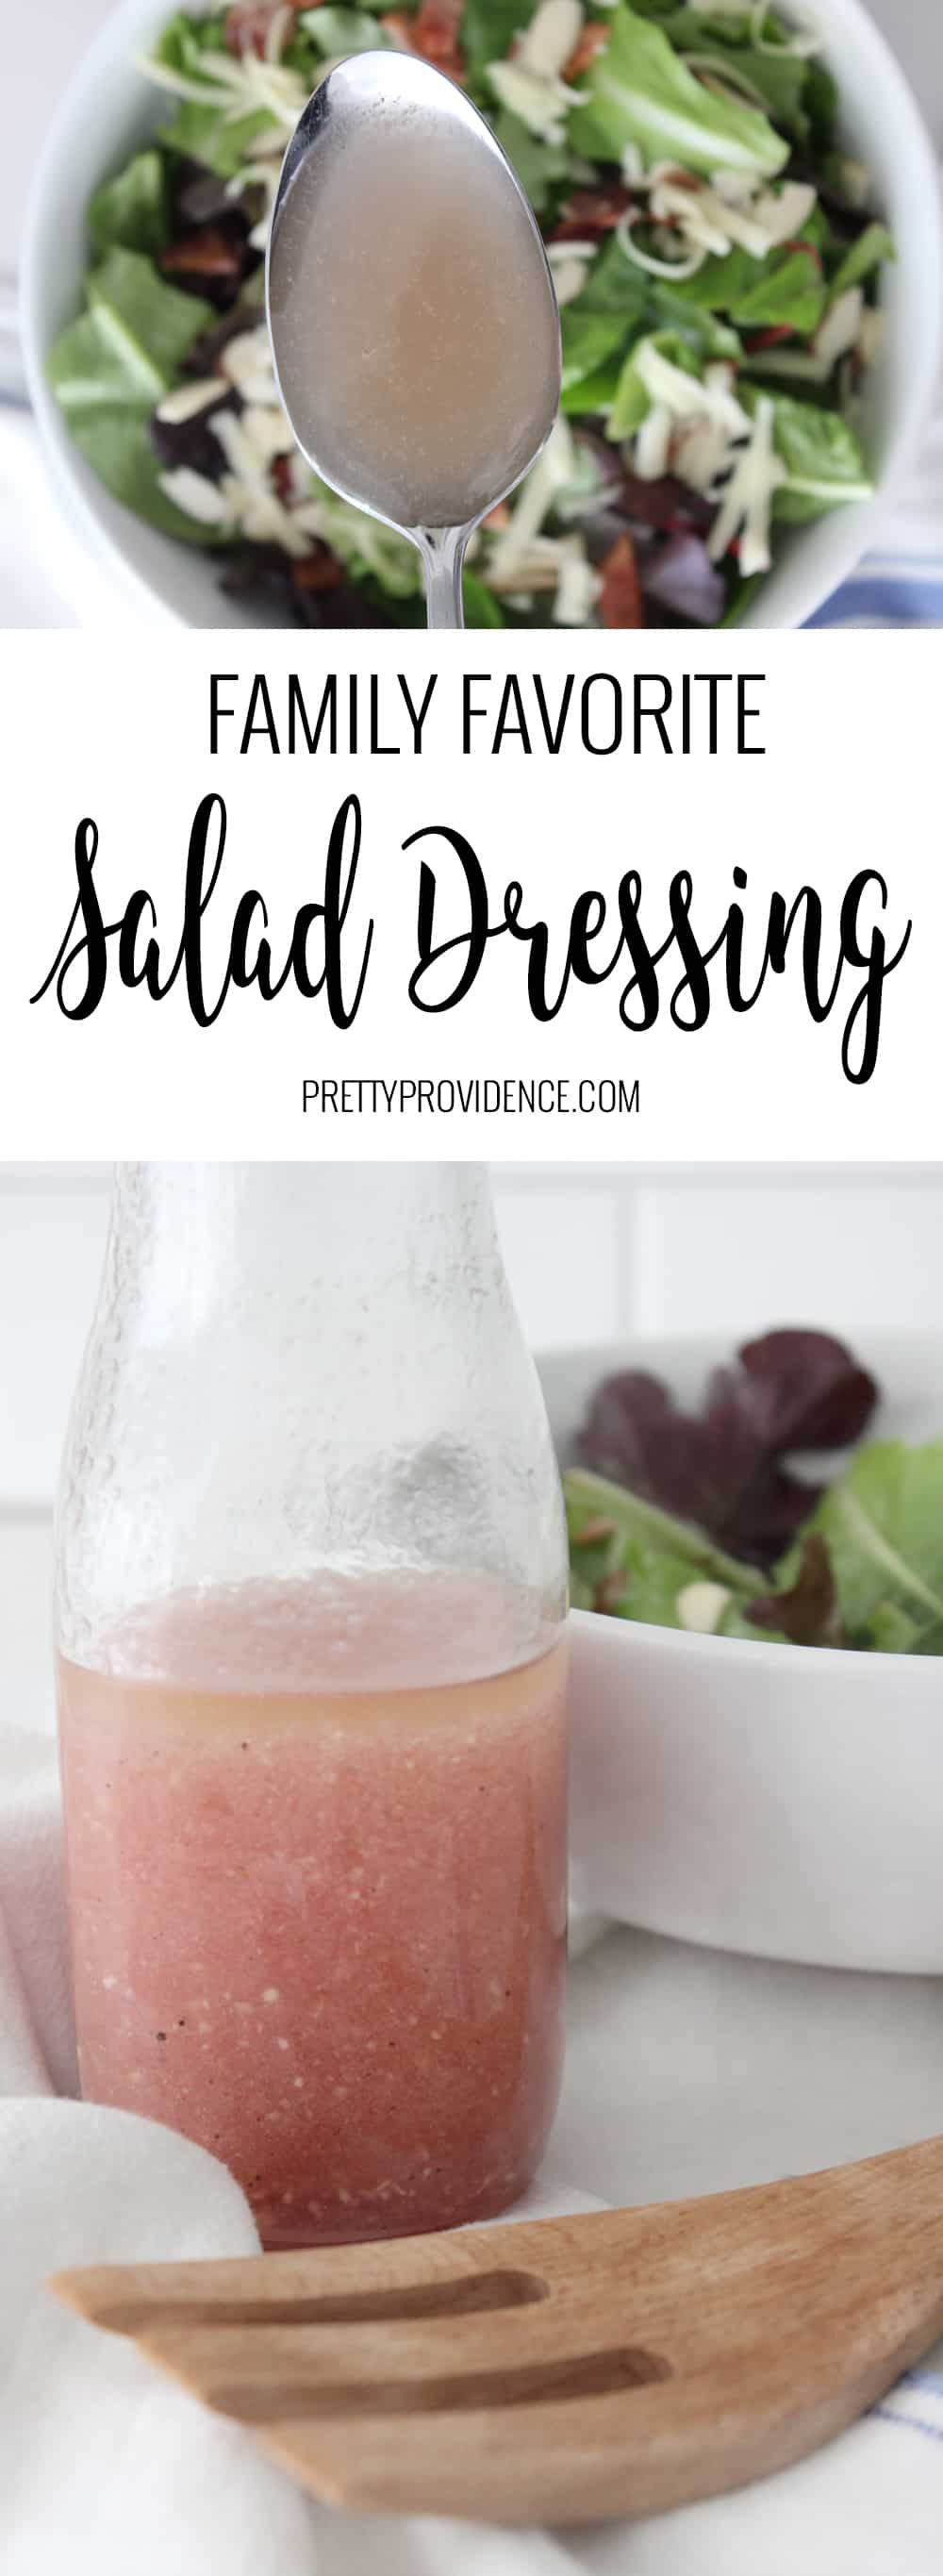 Our families very favorite salad dressing! It is so good you might want to drink it, but instead just use it for salads all week long!